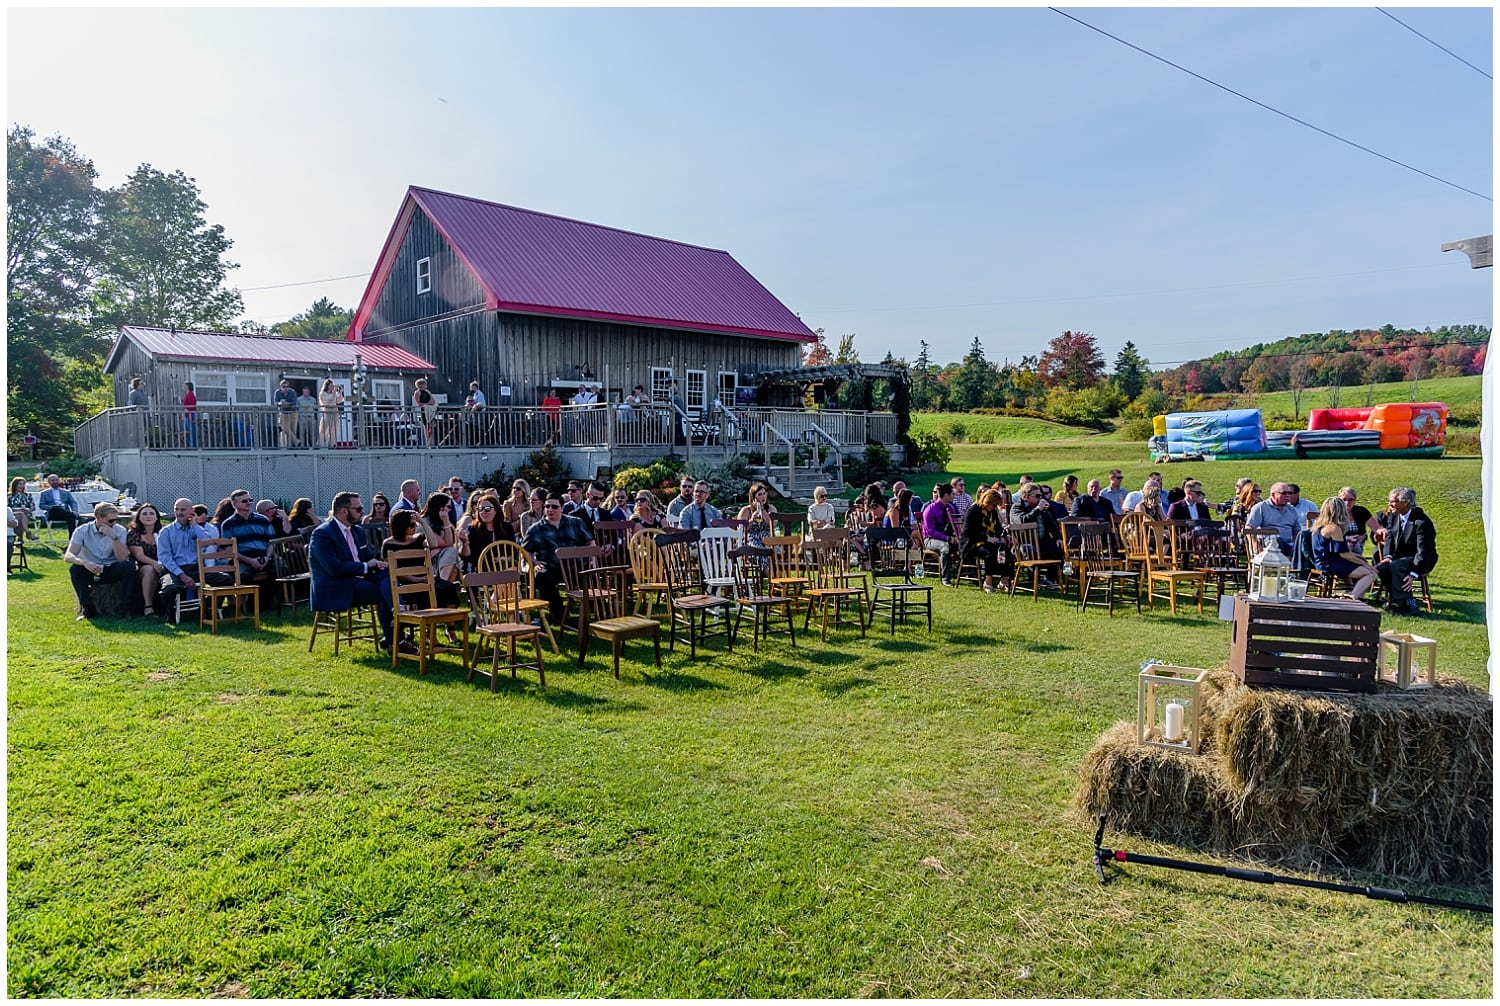 A wedding ceremony at the Barn at the Sadie Belle Farm in Hantsport NS.